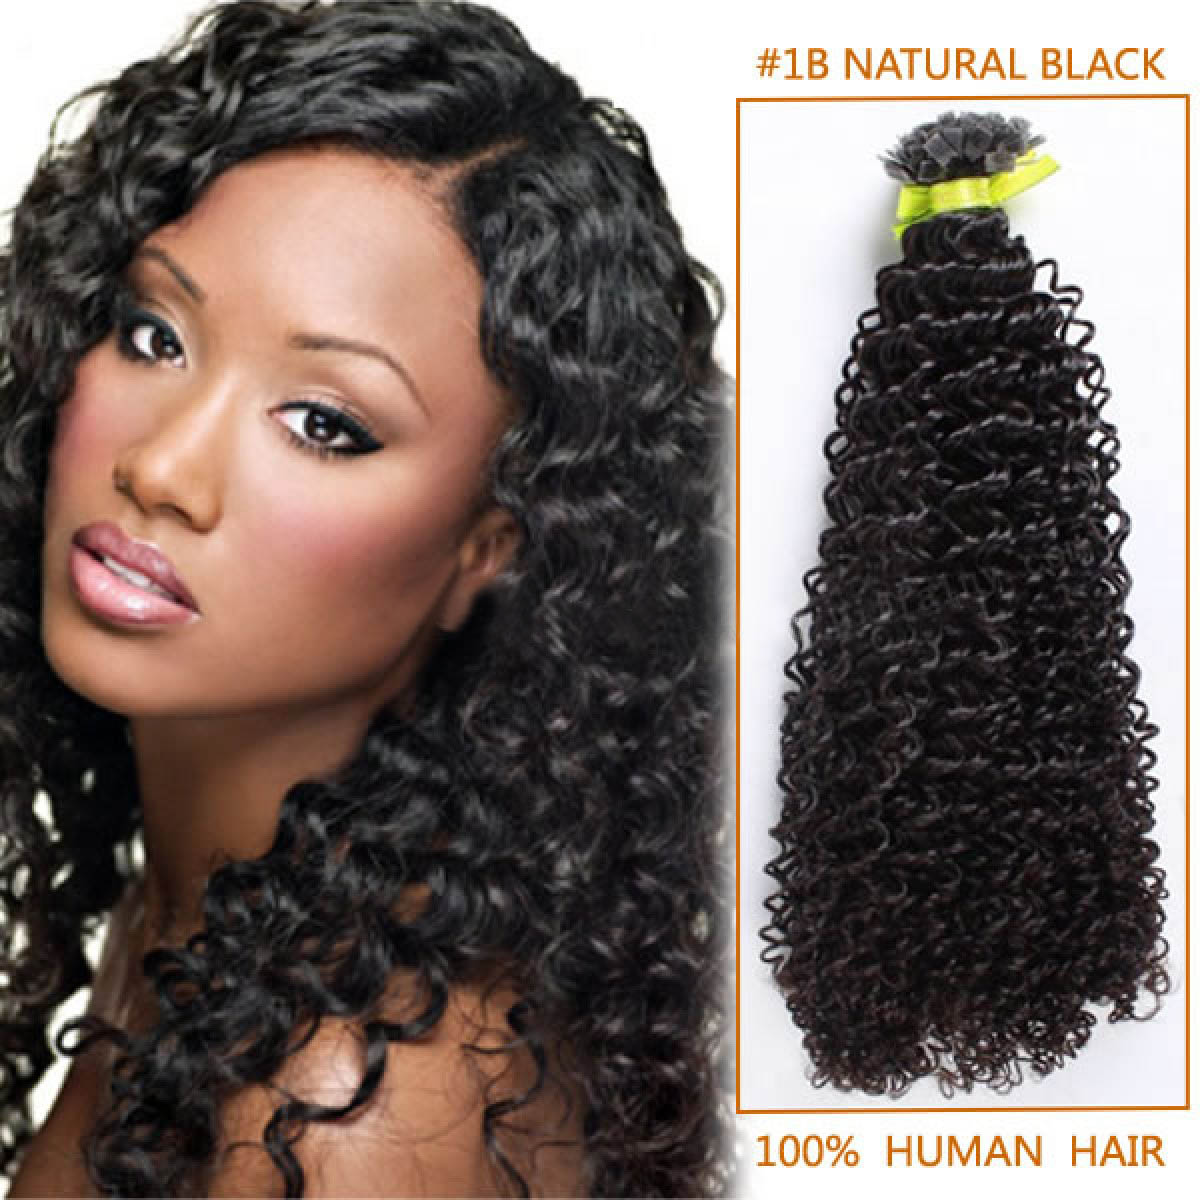 30 Inch #1b Natural Black Afro Curl Indian Remy Hair Wefts ...